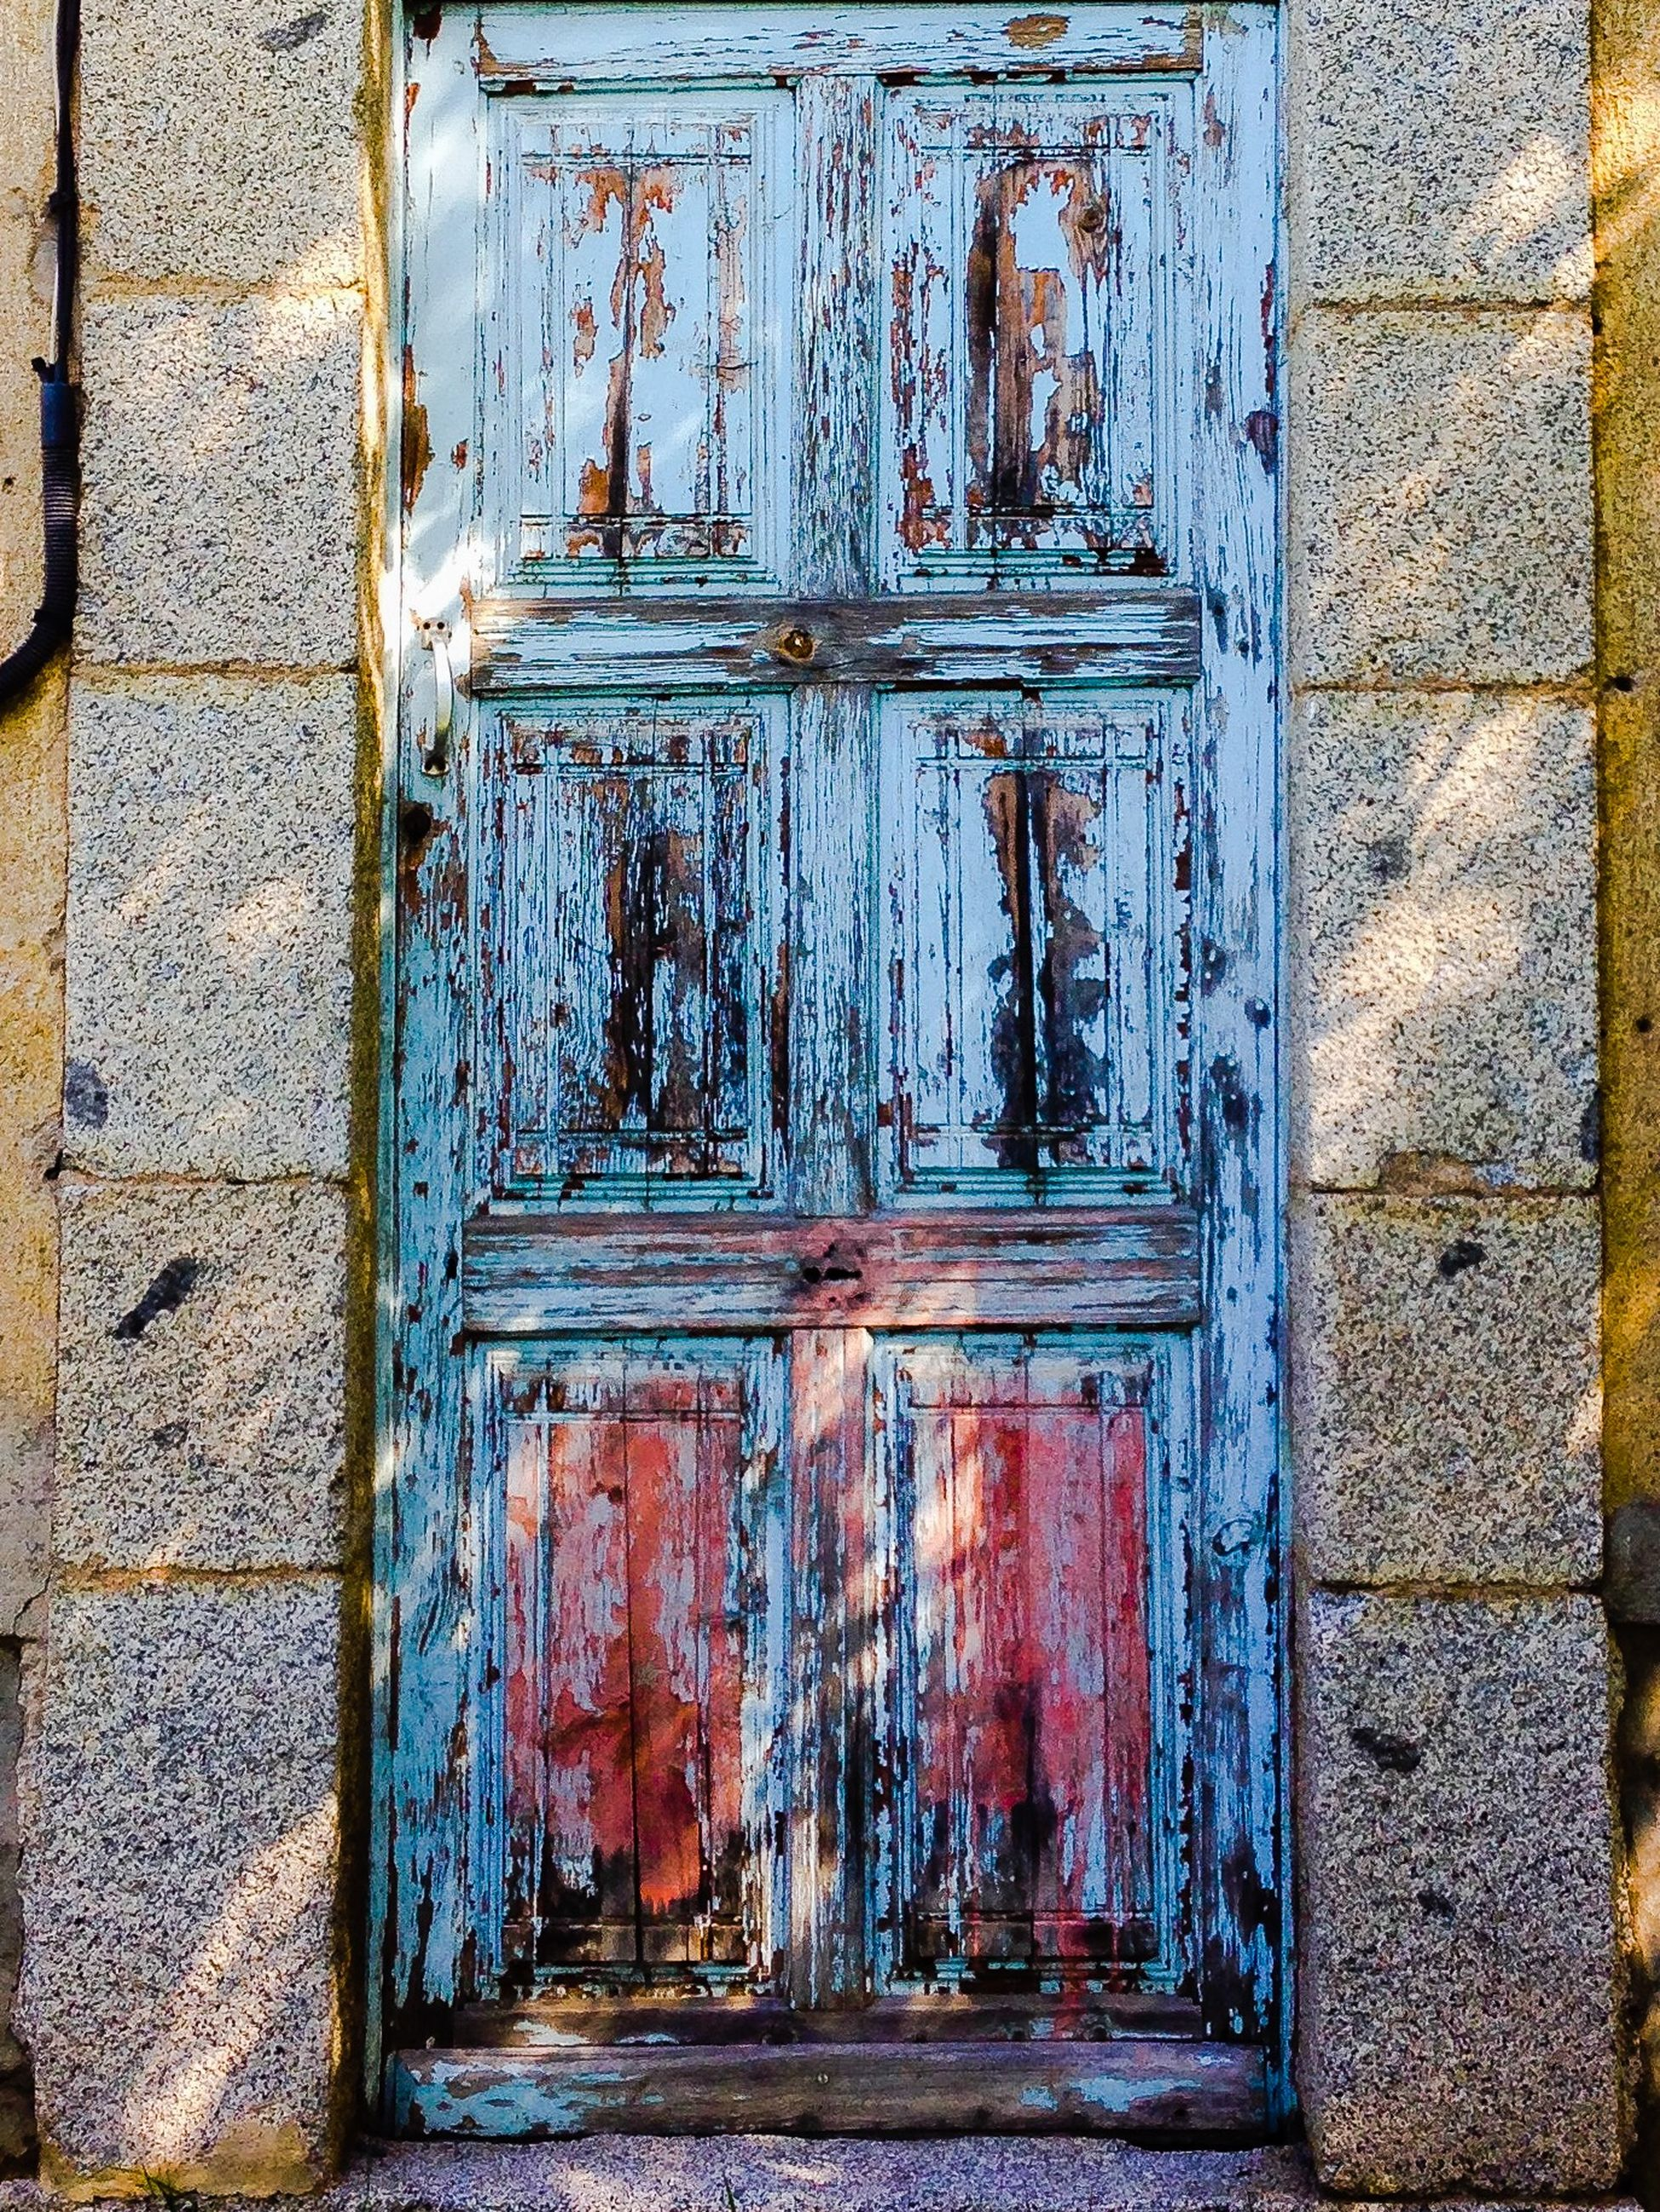 door, built structure, architecture, building exterior, closed, safety, protection, wood - material, security, wall - building feature, full frame, entrance, pattern, window, house, old, wooden, wall, brick wall, outdoors